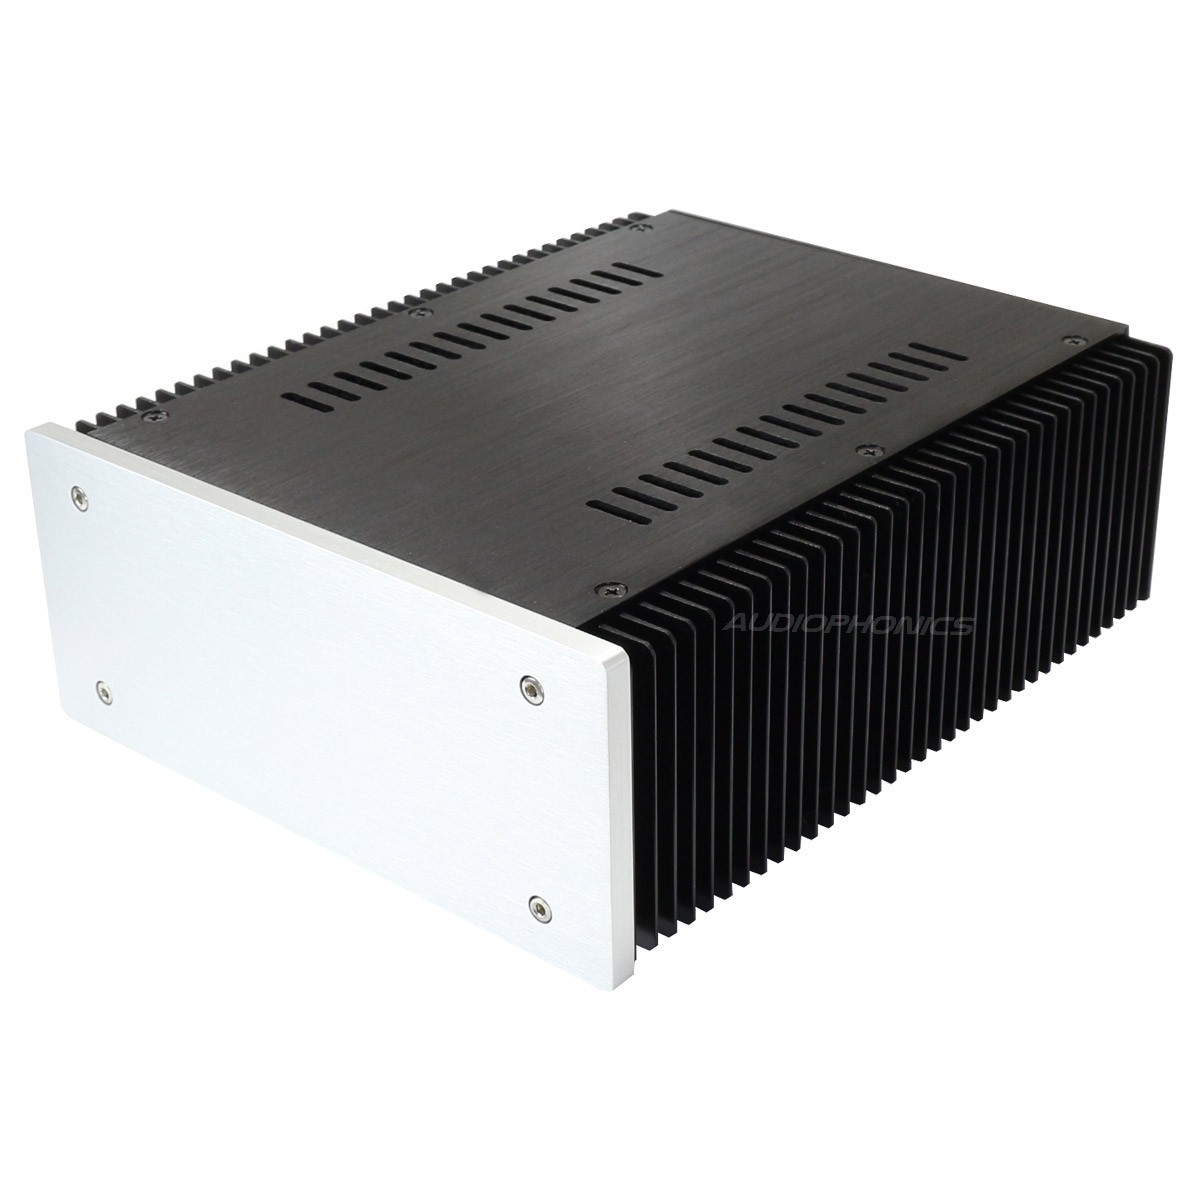 DIY Box / Case 100% Aluminium with heatsink 257x211x90mm